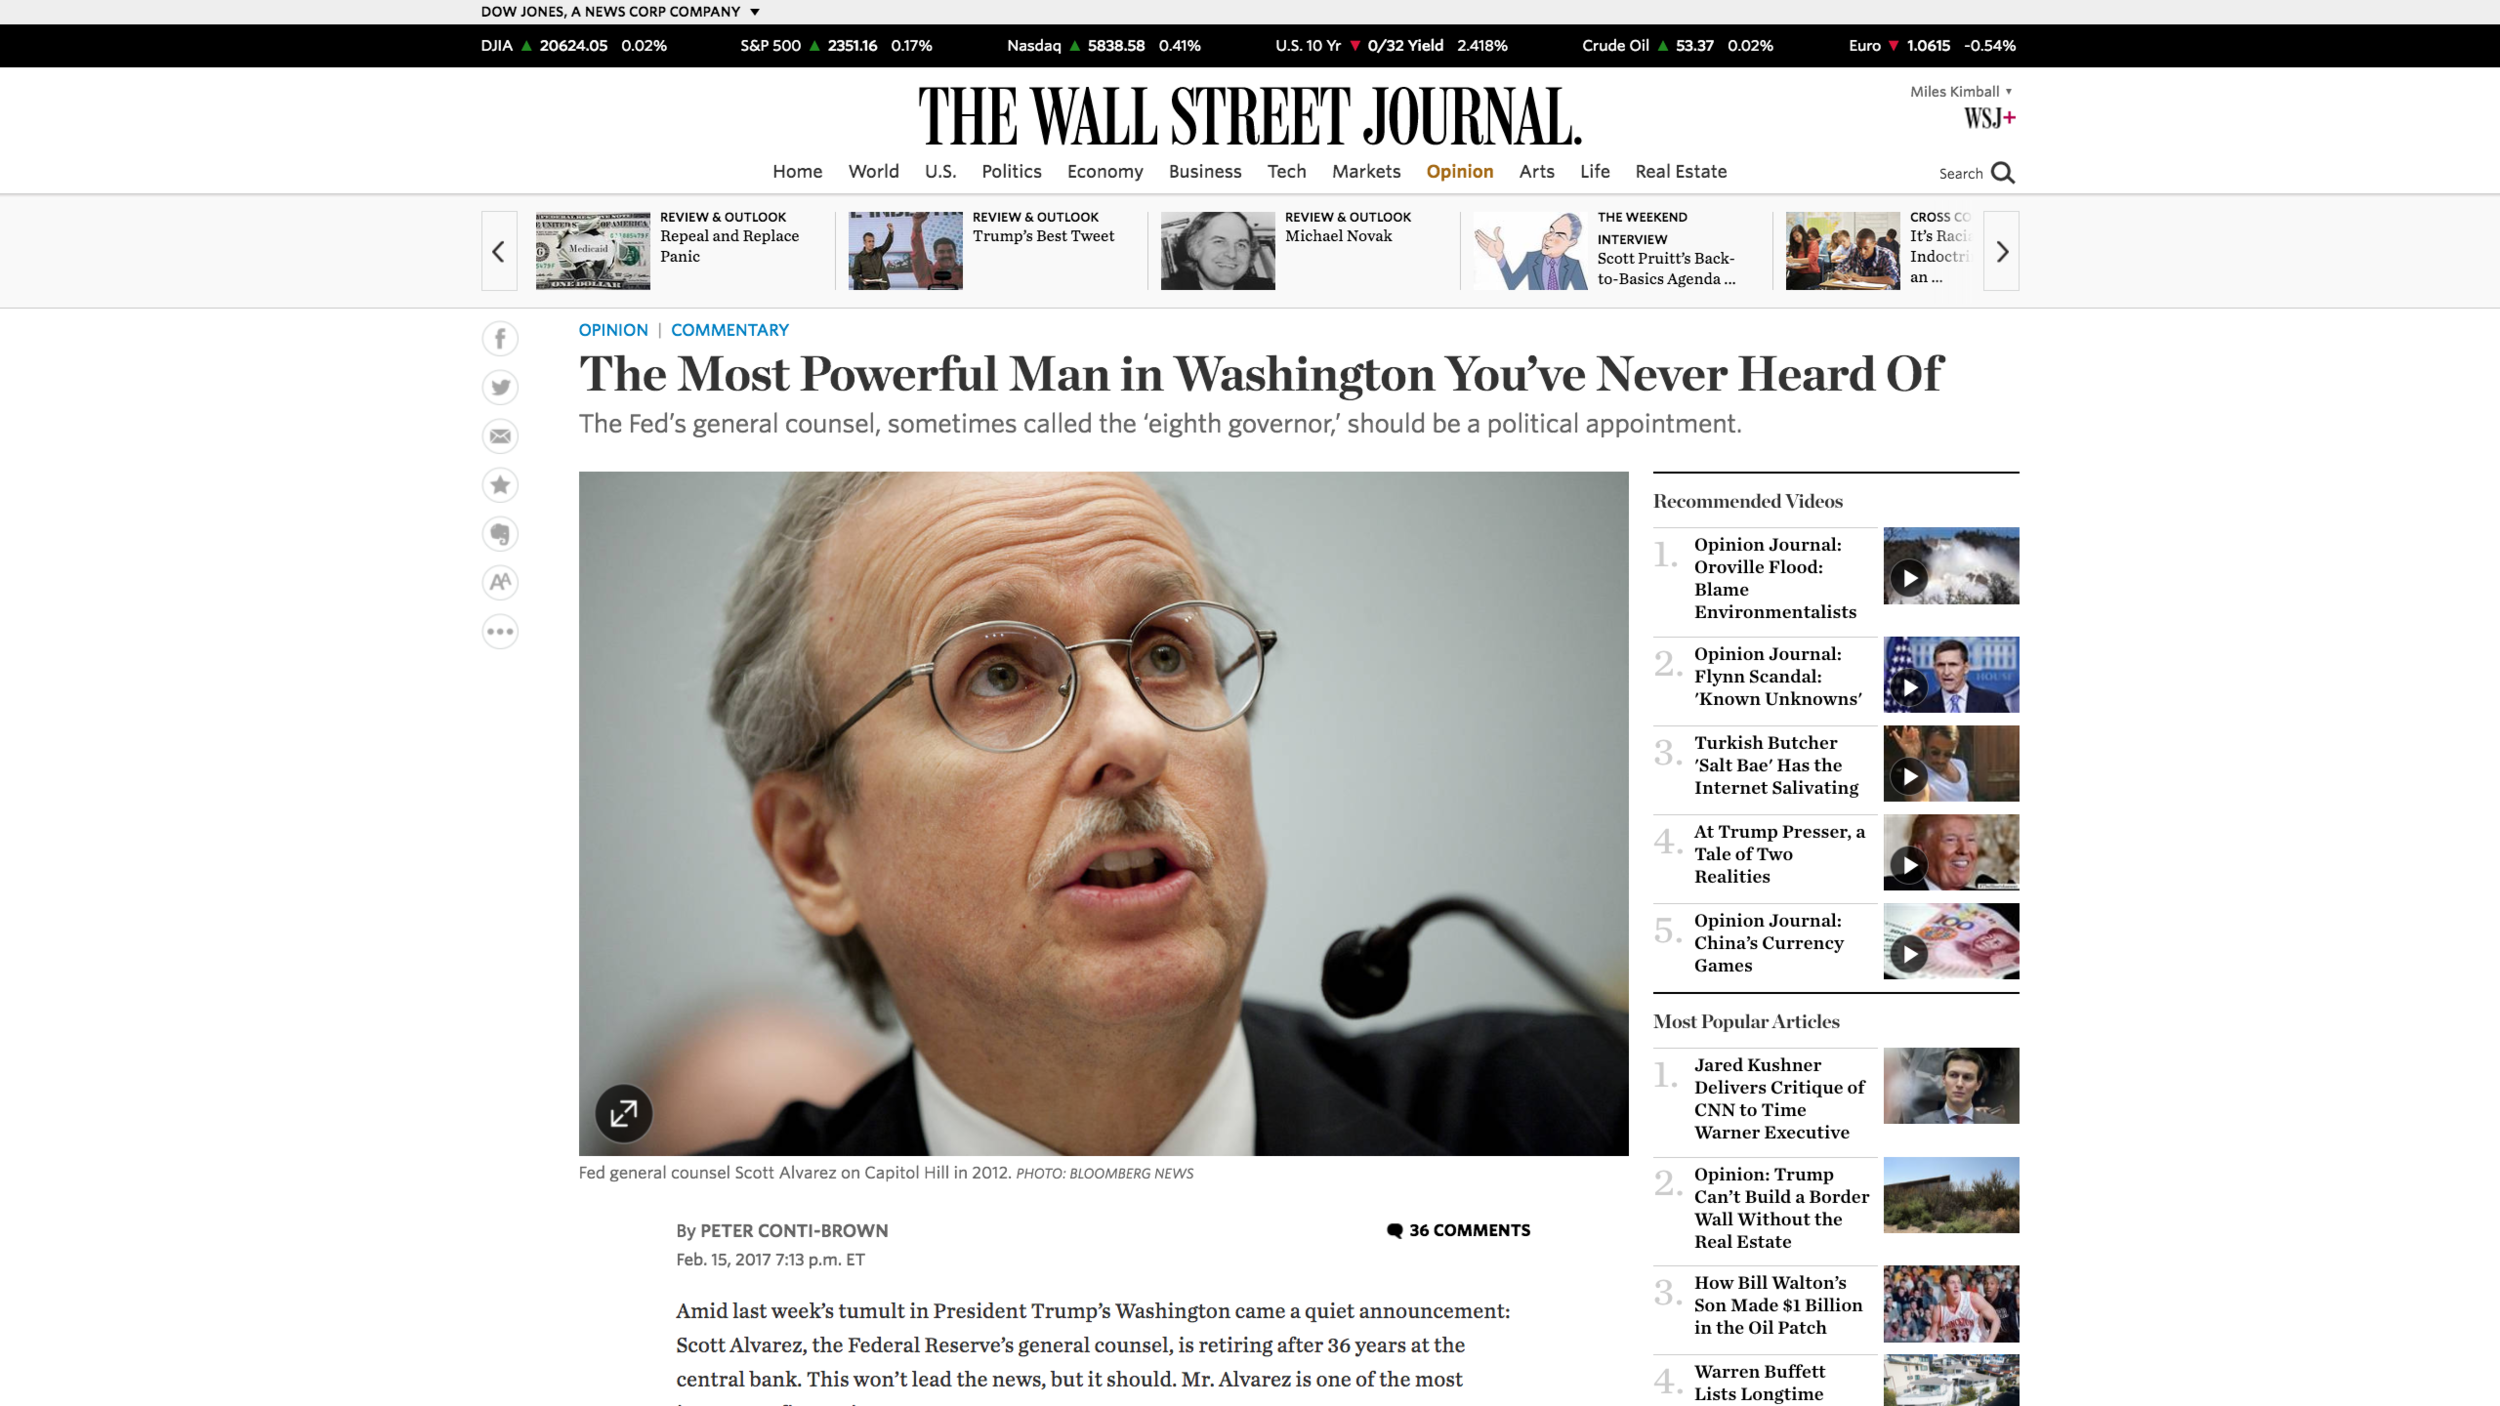 Link to Peter Conti-Brown's op-ed in the Wall Street Journal